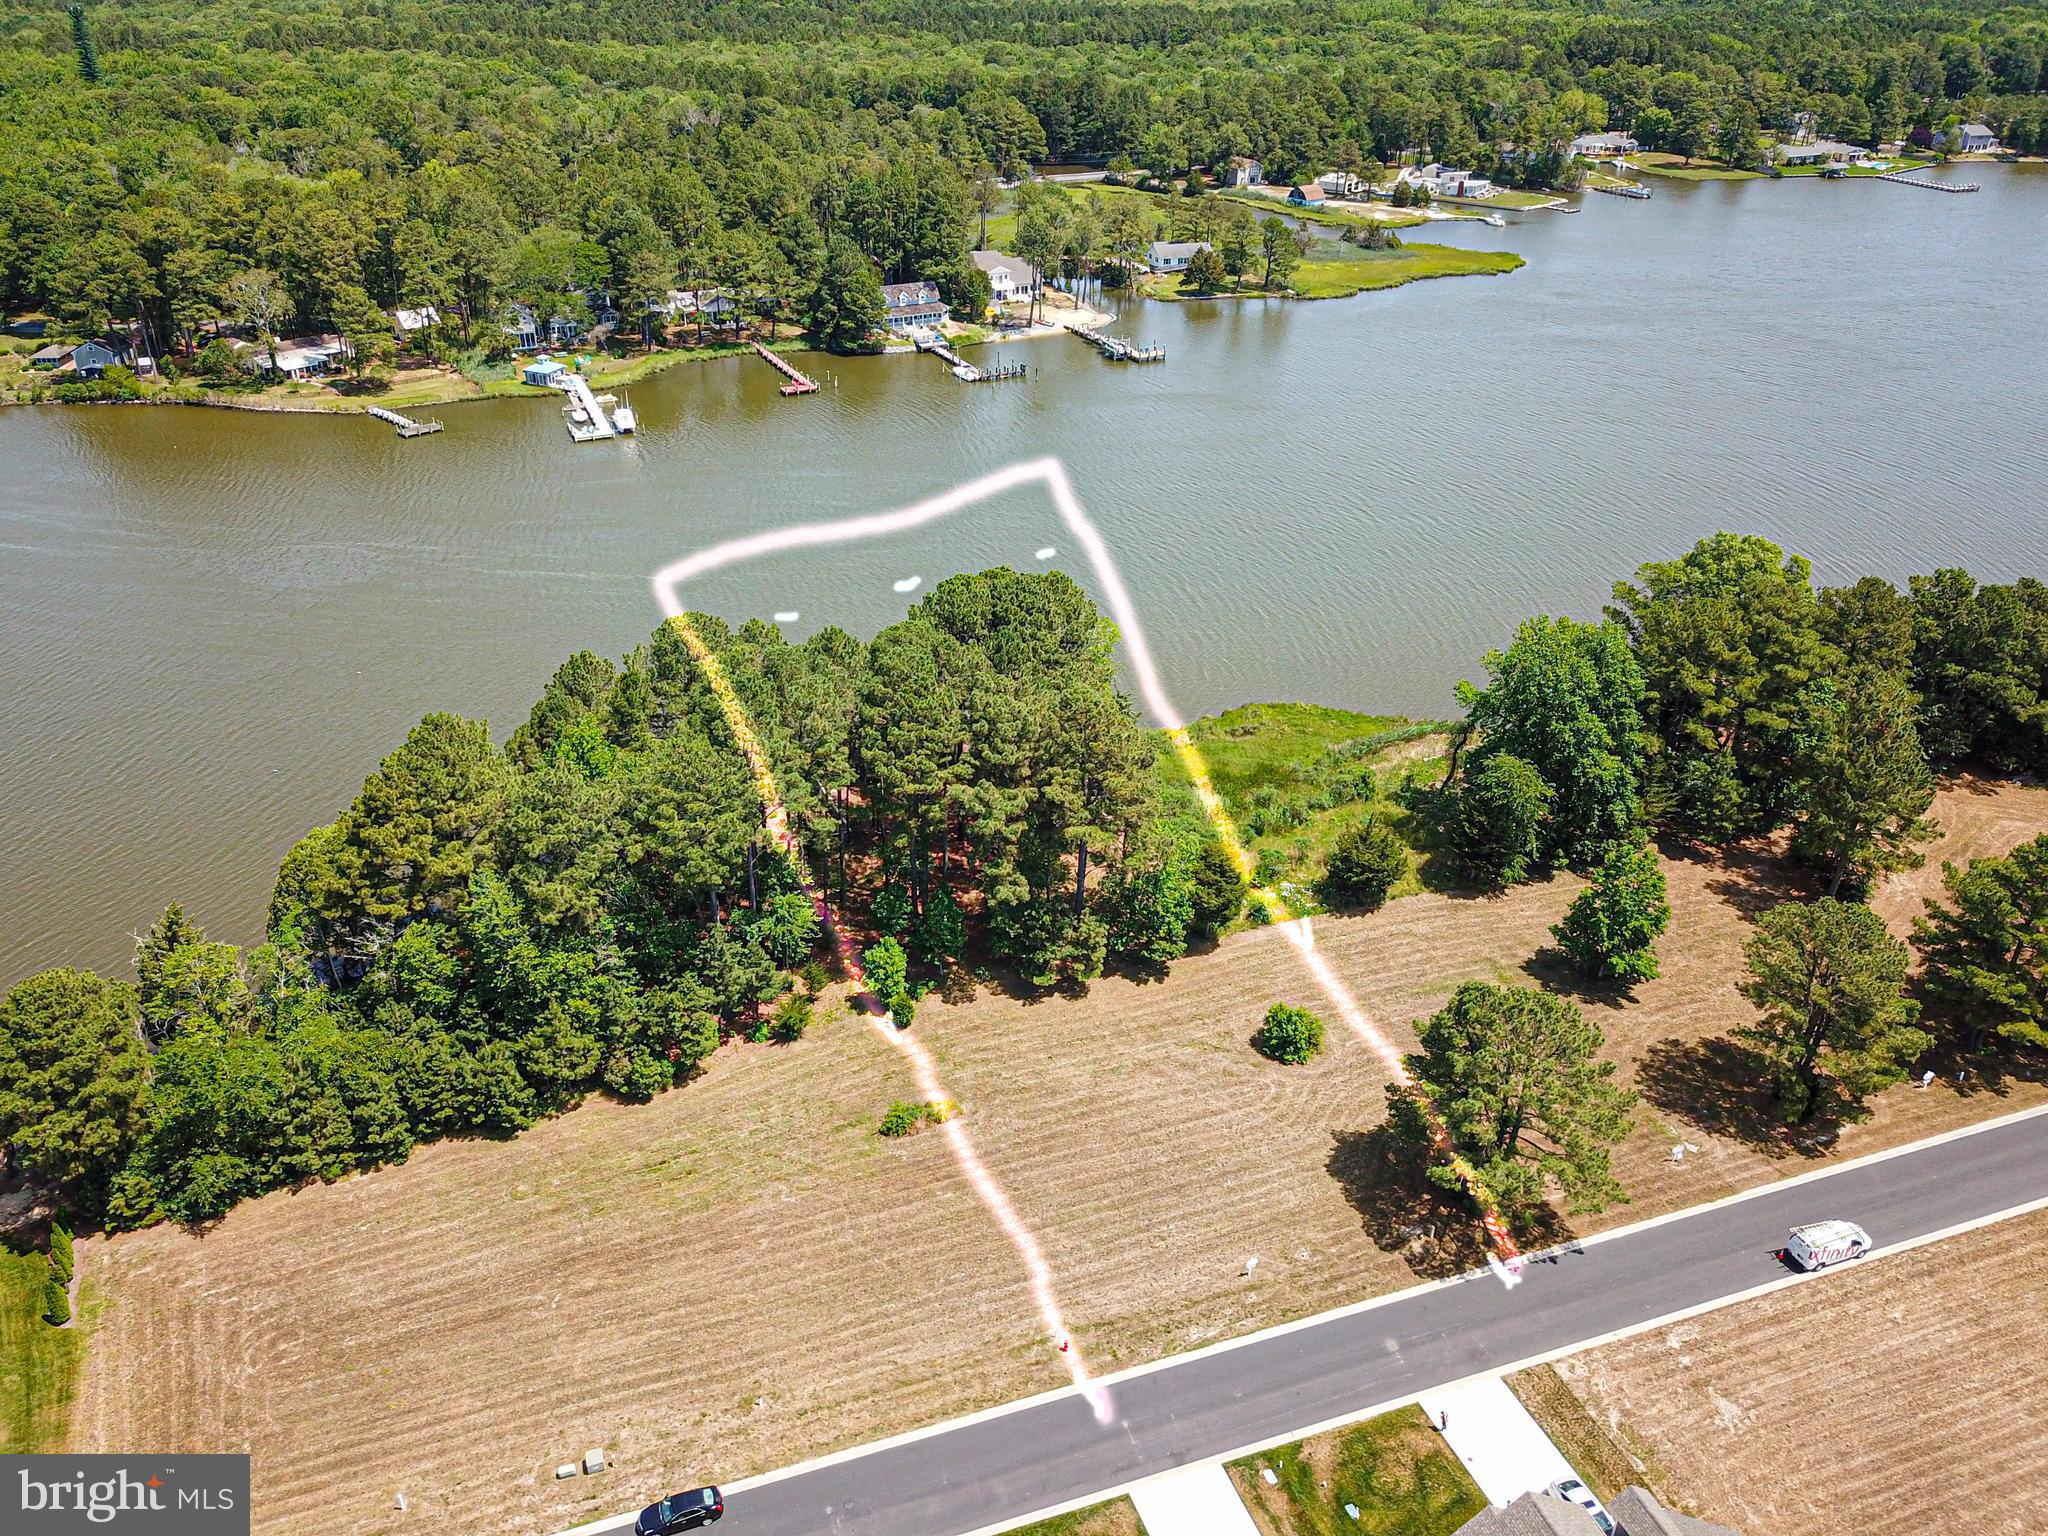 Buy this beautiful waterfront lot in the premiere golf community of Glen Riddle and you are purchasing a piece of history. Riddle Farm, which is now the Glen Riddle community, was once the most important horse training center in the nation. The greatest horses of the 20th century, Man o~ War and War Admiral, once galloped where golfers now play. The stable, built to house 60 horses, was carefully renovated and is now a Ruth~s Chris Steak House restaurant, its walls filled with photos and memorabilia.This lot has approximately 90 feet along Turville Creek. It also shares, with the lot to the left, what the owners were told are the ruins of the equine therapy pool. Today it would make a great spot to launch a canoe or kayak. Who knows how many great thoroughbreds walked this very ground?Build your dream home here and enjoy all that Glen Riddle has to offer: a gated resort-style community with a private marina, owners~ clubhouse, two 18-hole championship golf-courses, swimming pool, tennis courts and more. It is ideally located near historic downtown Berlin, Assateague Island Park, and the beach attractions at Ocean City.